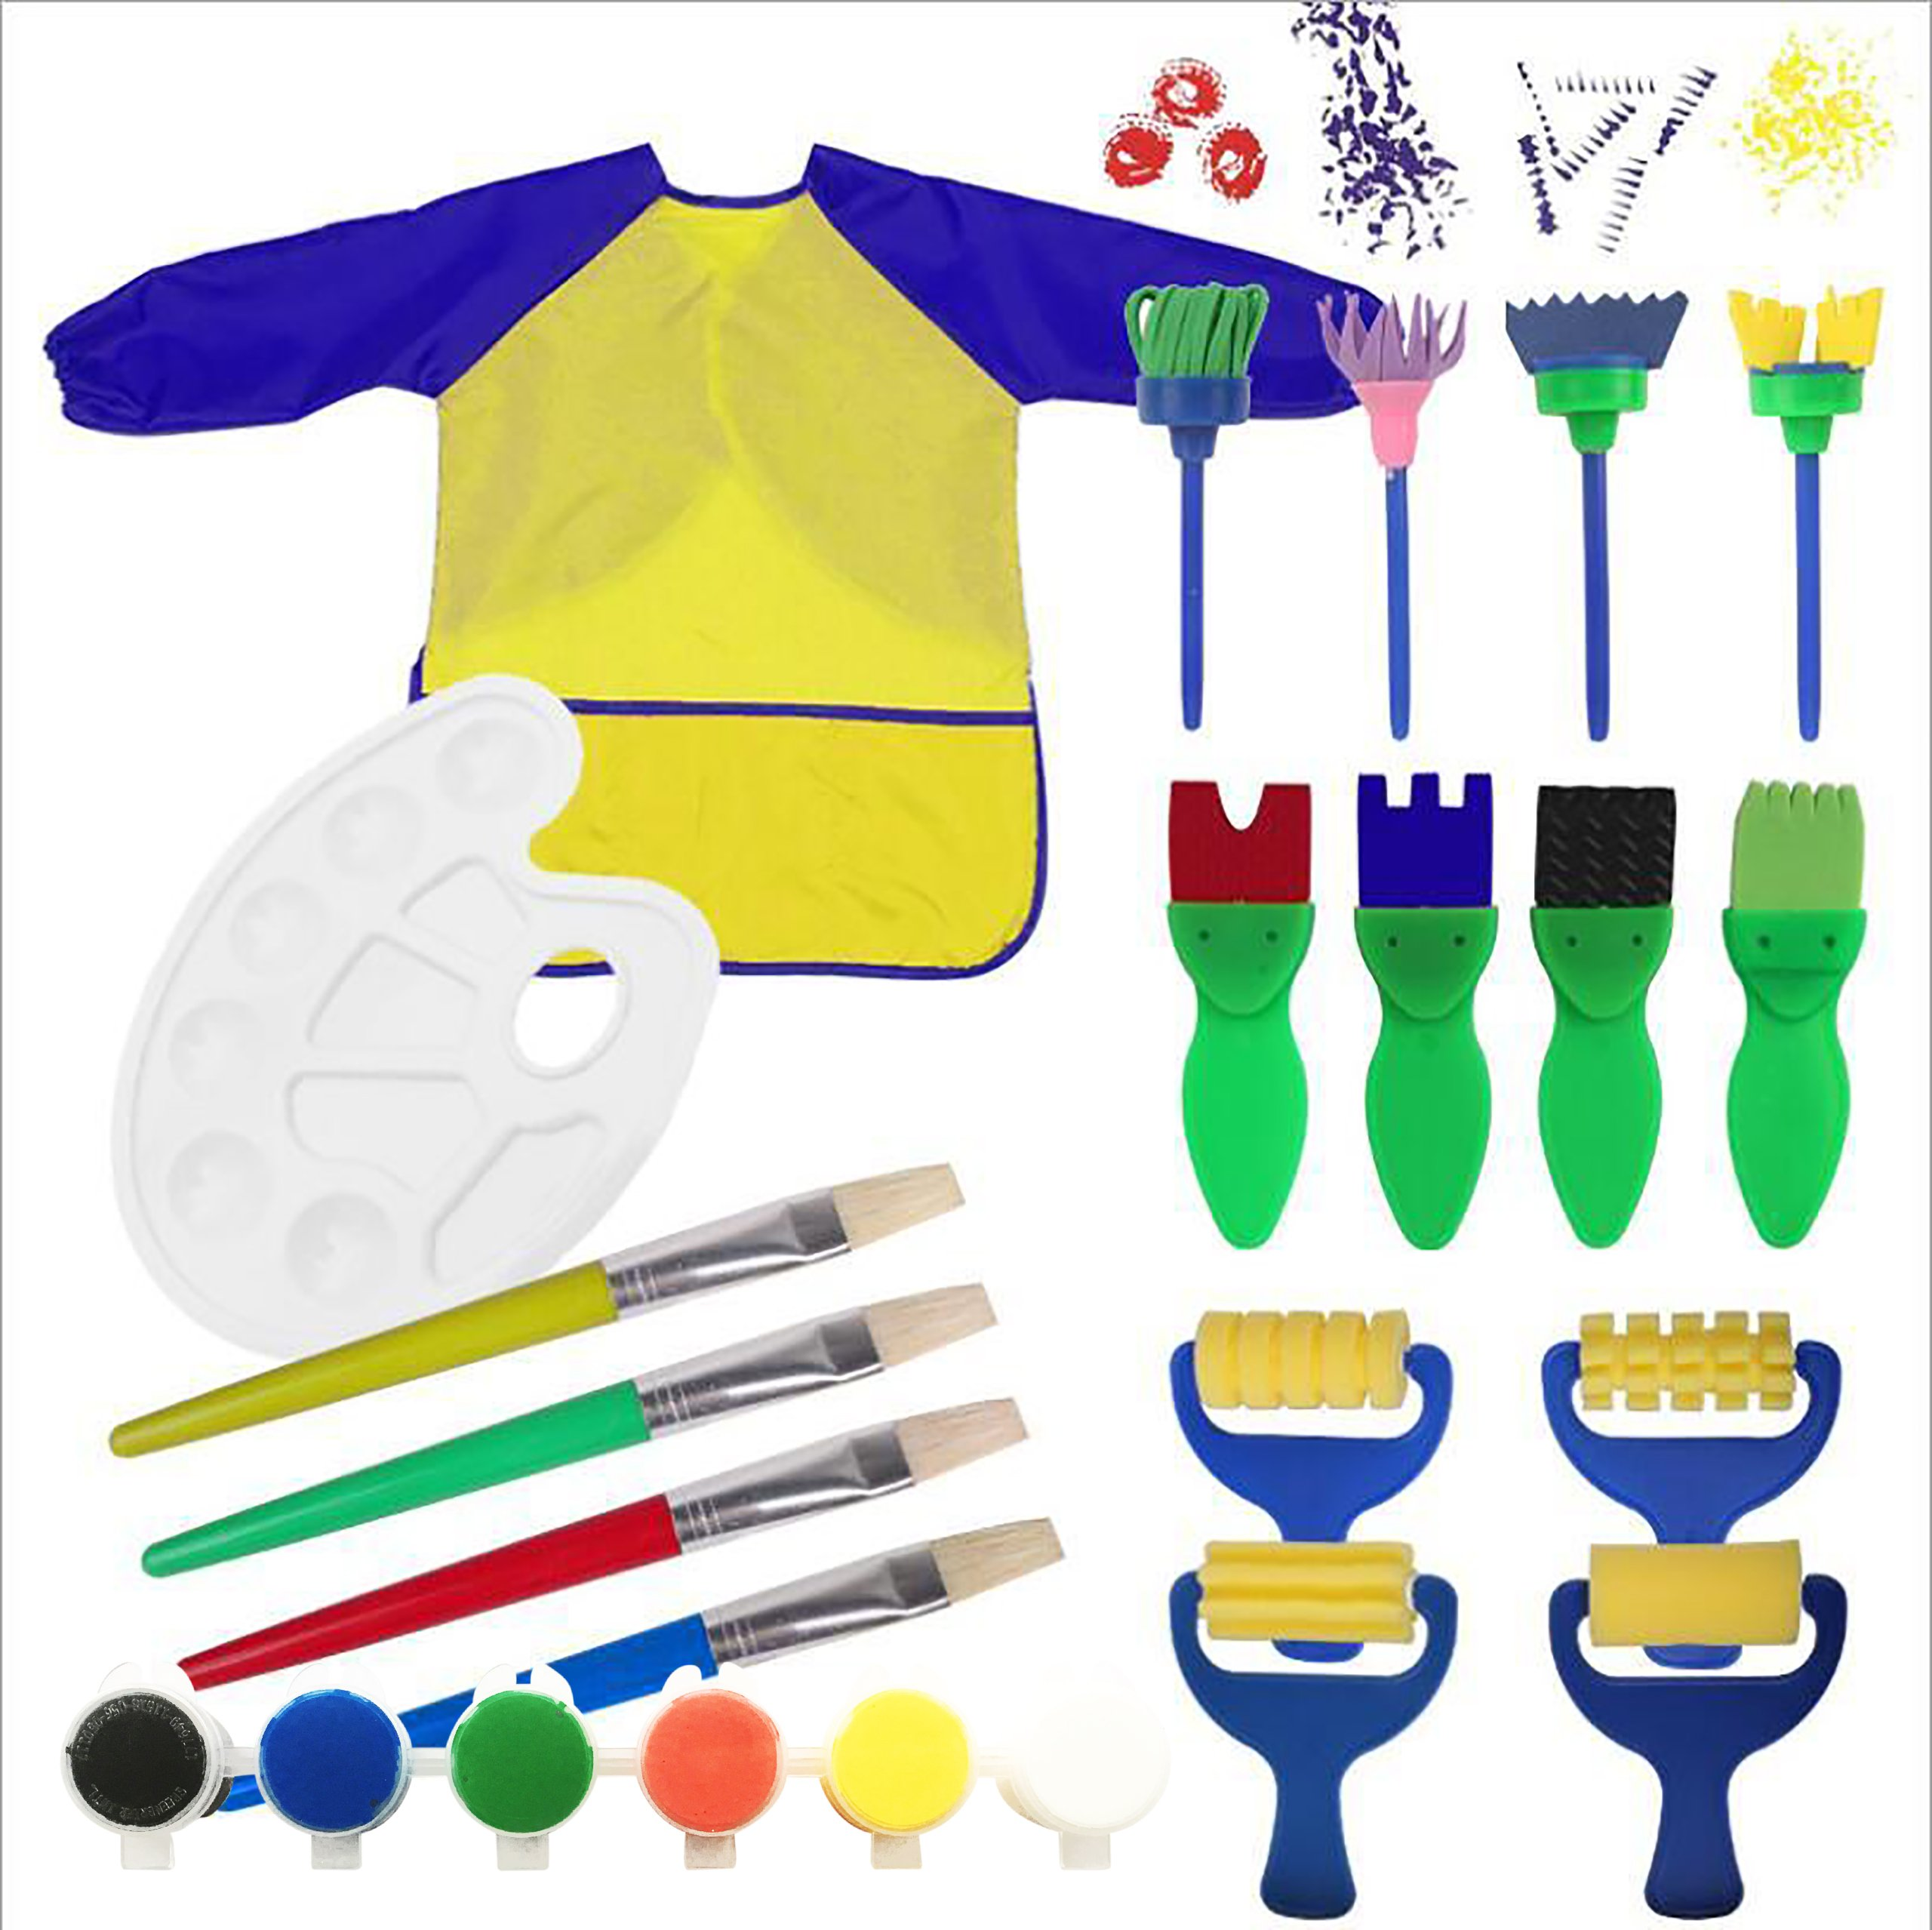 Kids Paint Set Bundle with Yellow/Blue Long Sleeve Art Smock, Brushes, Paints and Palette (19 items)